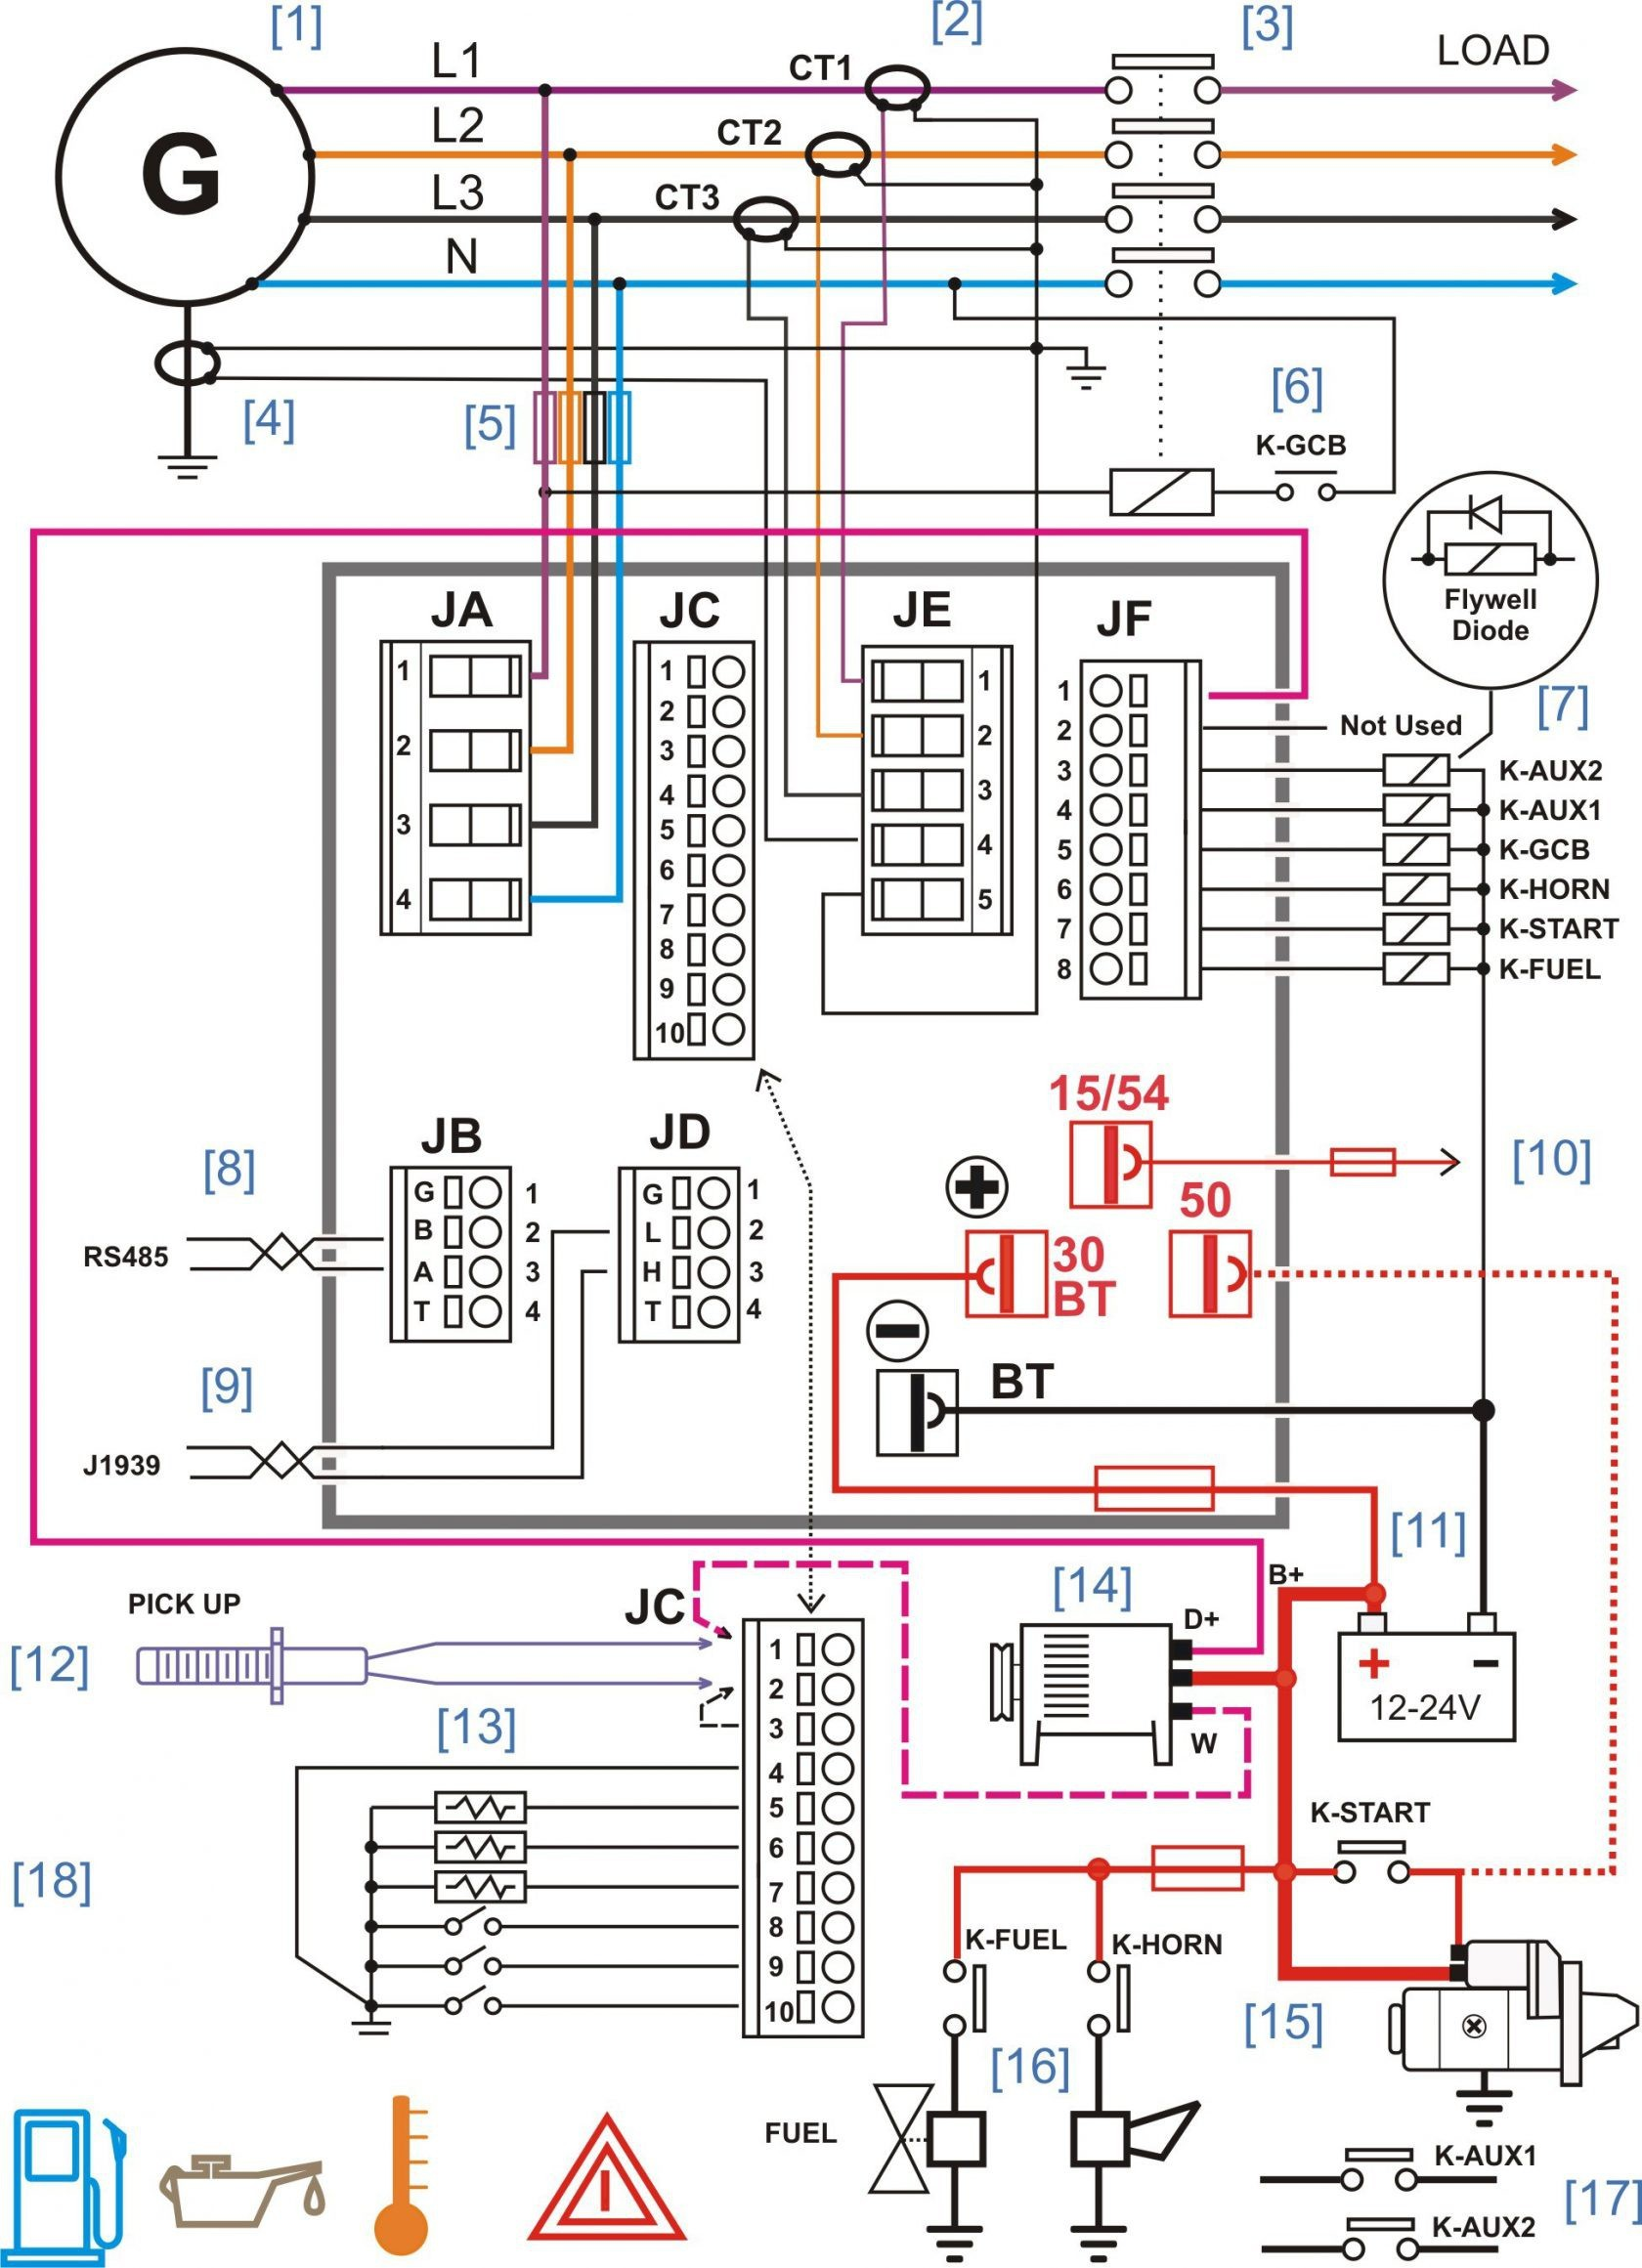 Basic Home Wiring Diagrams Beautiful Autozone Wiring Diagrams Diagram Of Basic Home Wiring Diagrams